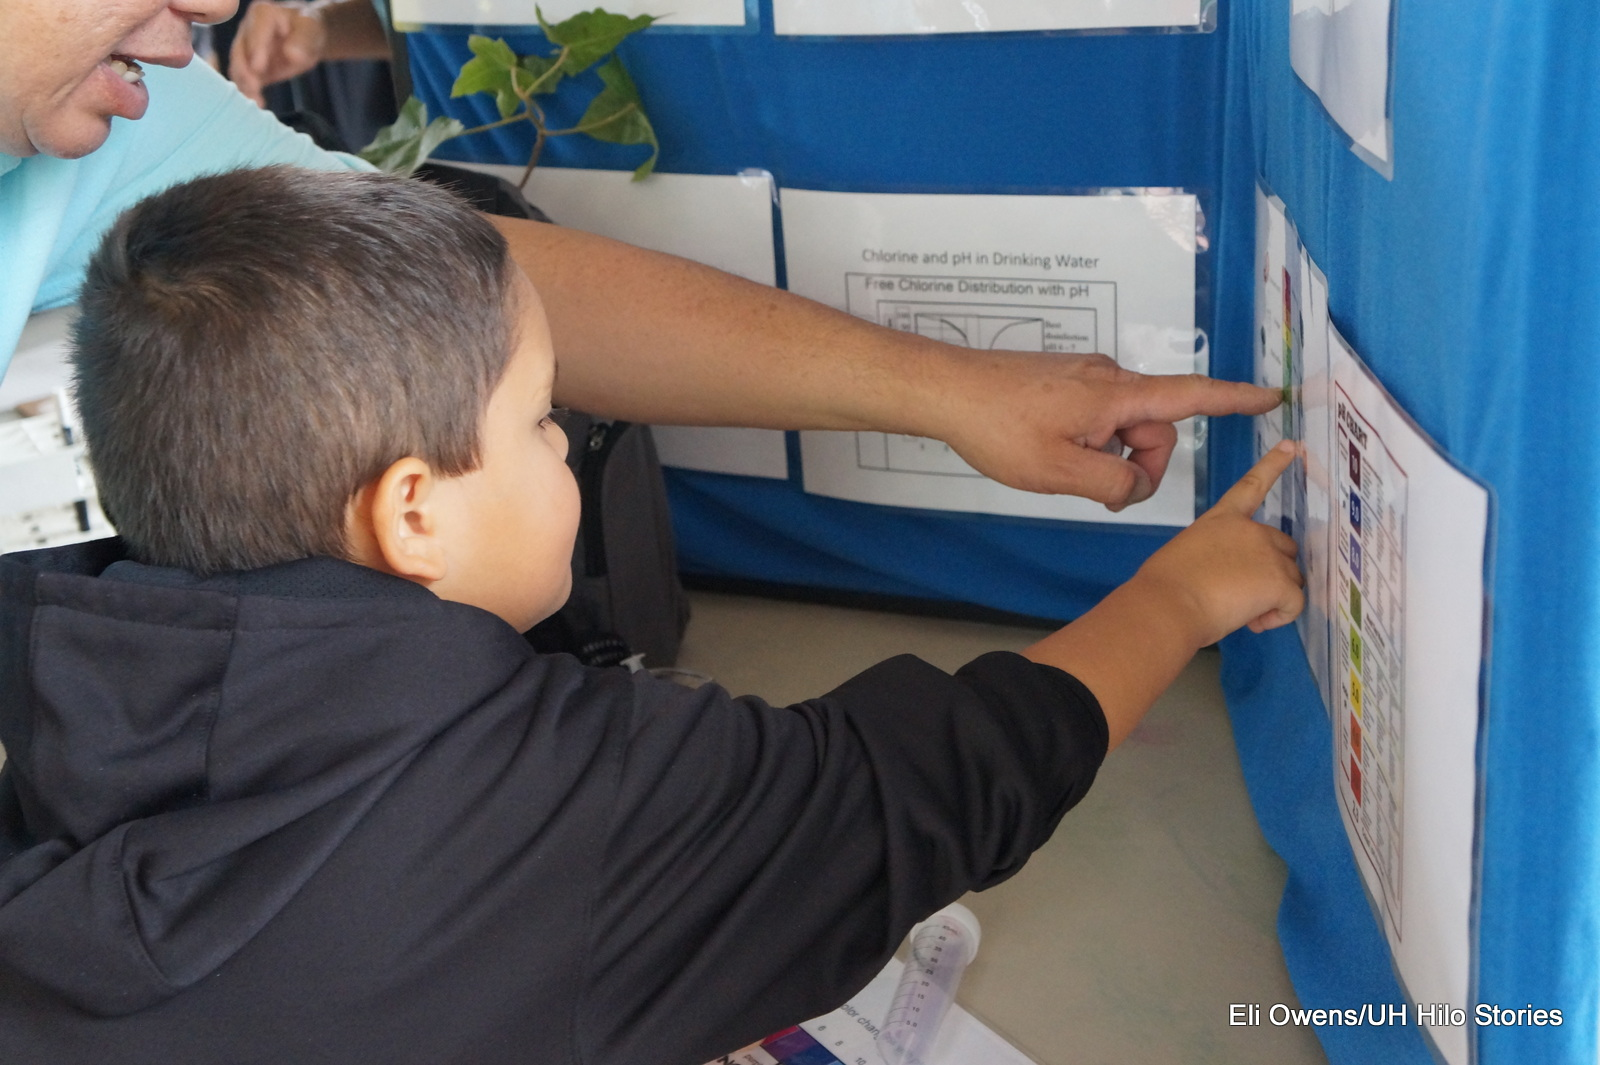 BOY POINTING TO INFORMATION ON A POSTER BOARD.